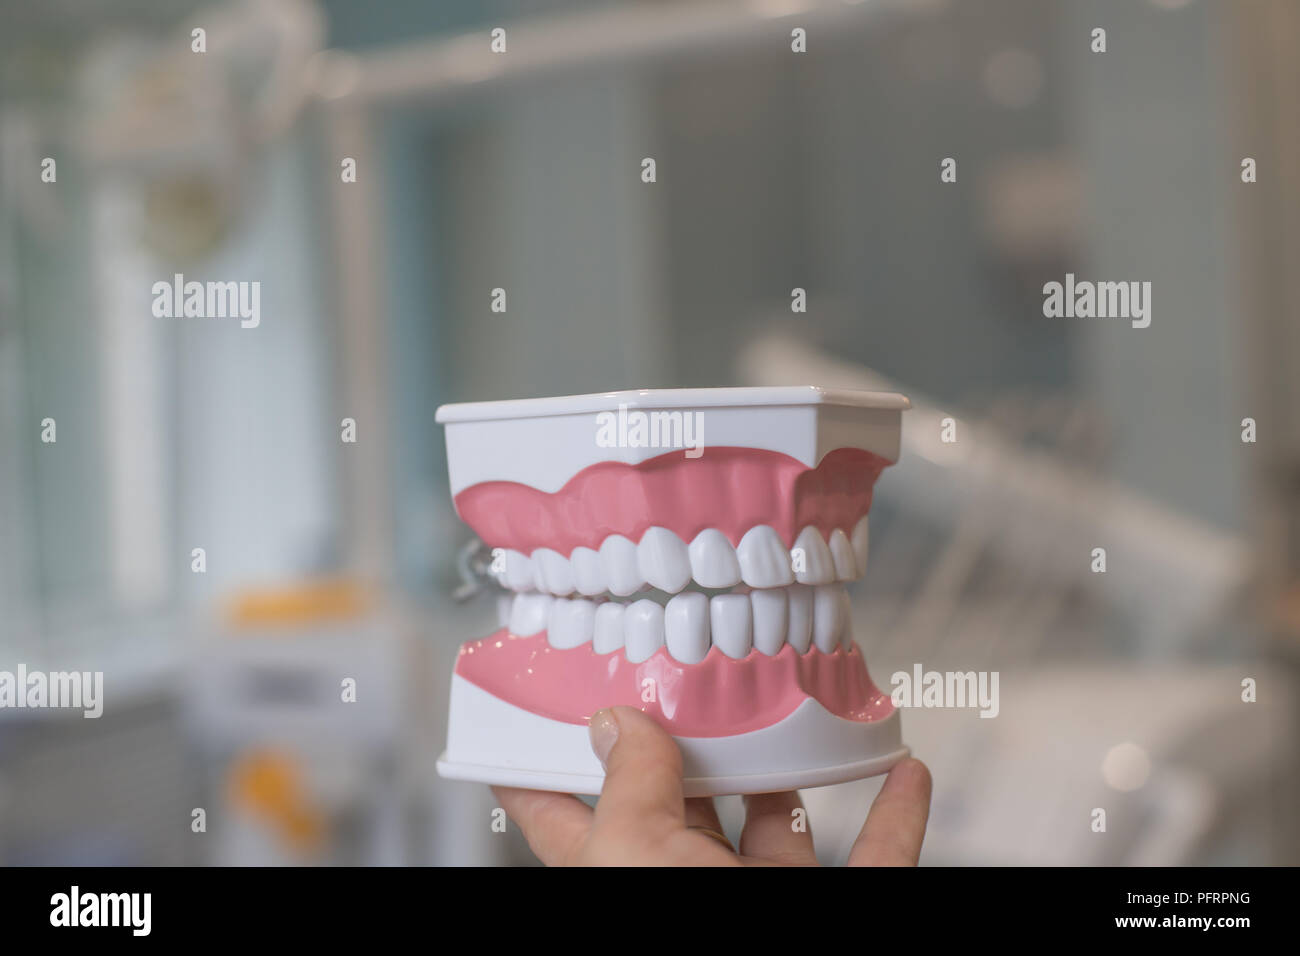 Dental Model of Teeth Isolated with clipping path on dentist clinic background .Studying dentistry and dentist office concept. Regular checkups are essential to oral health. Protecting Healthy Hygienic White Tooth - Stock Image